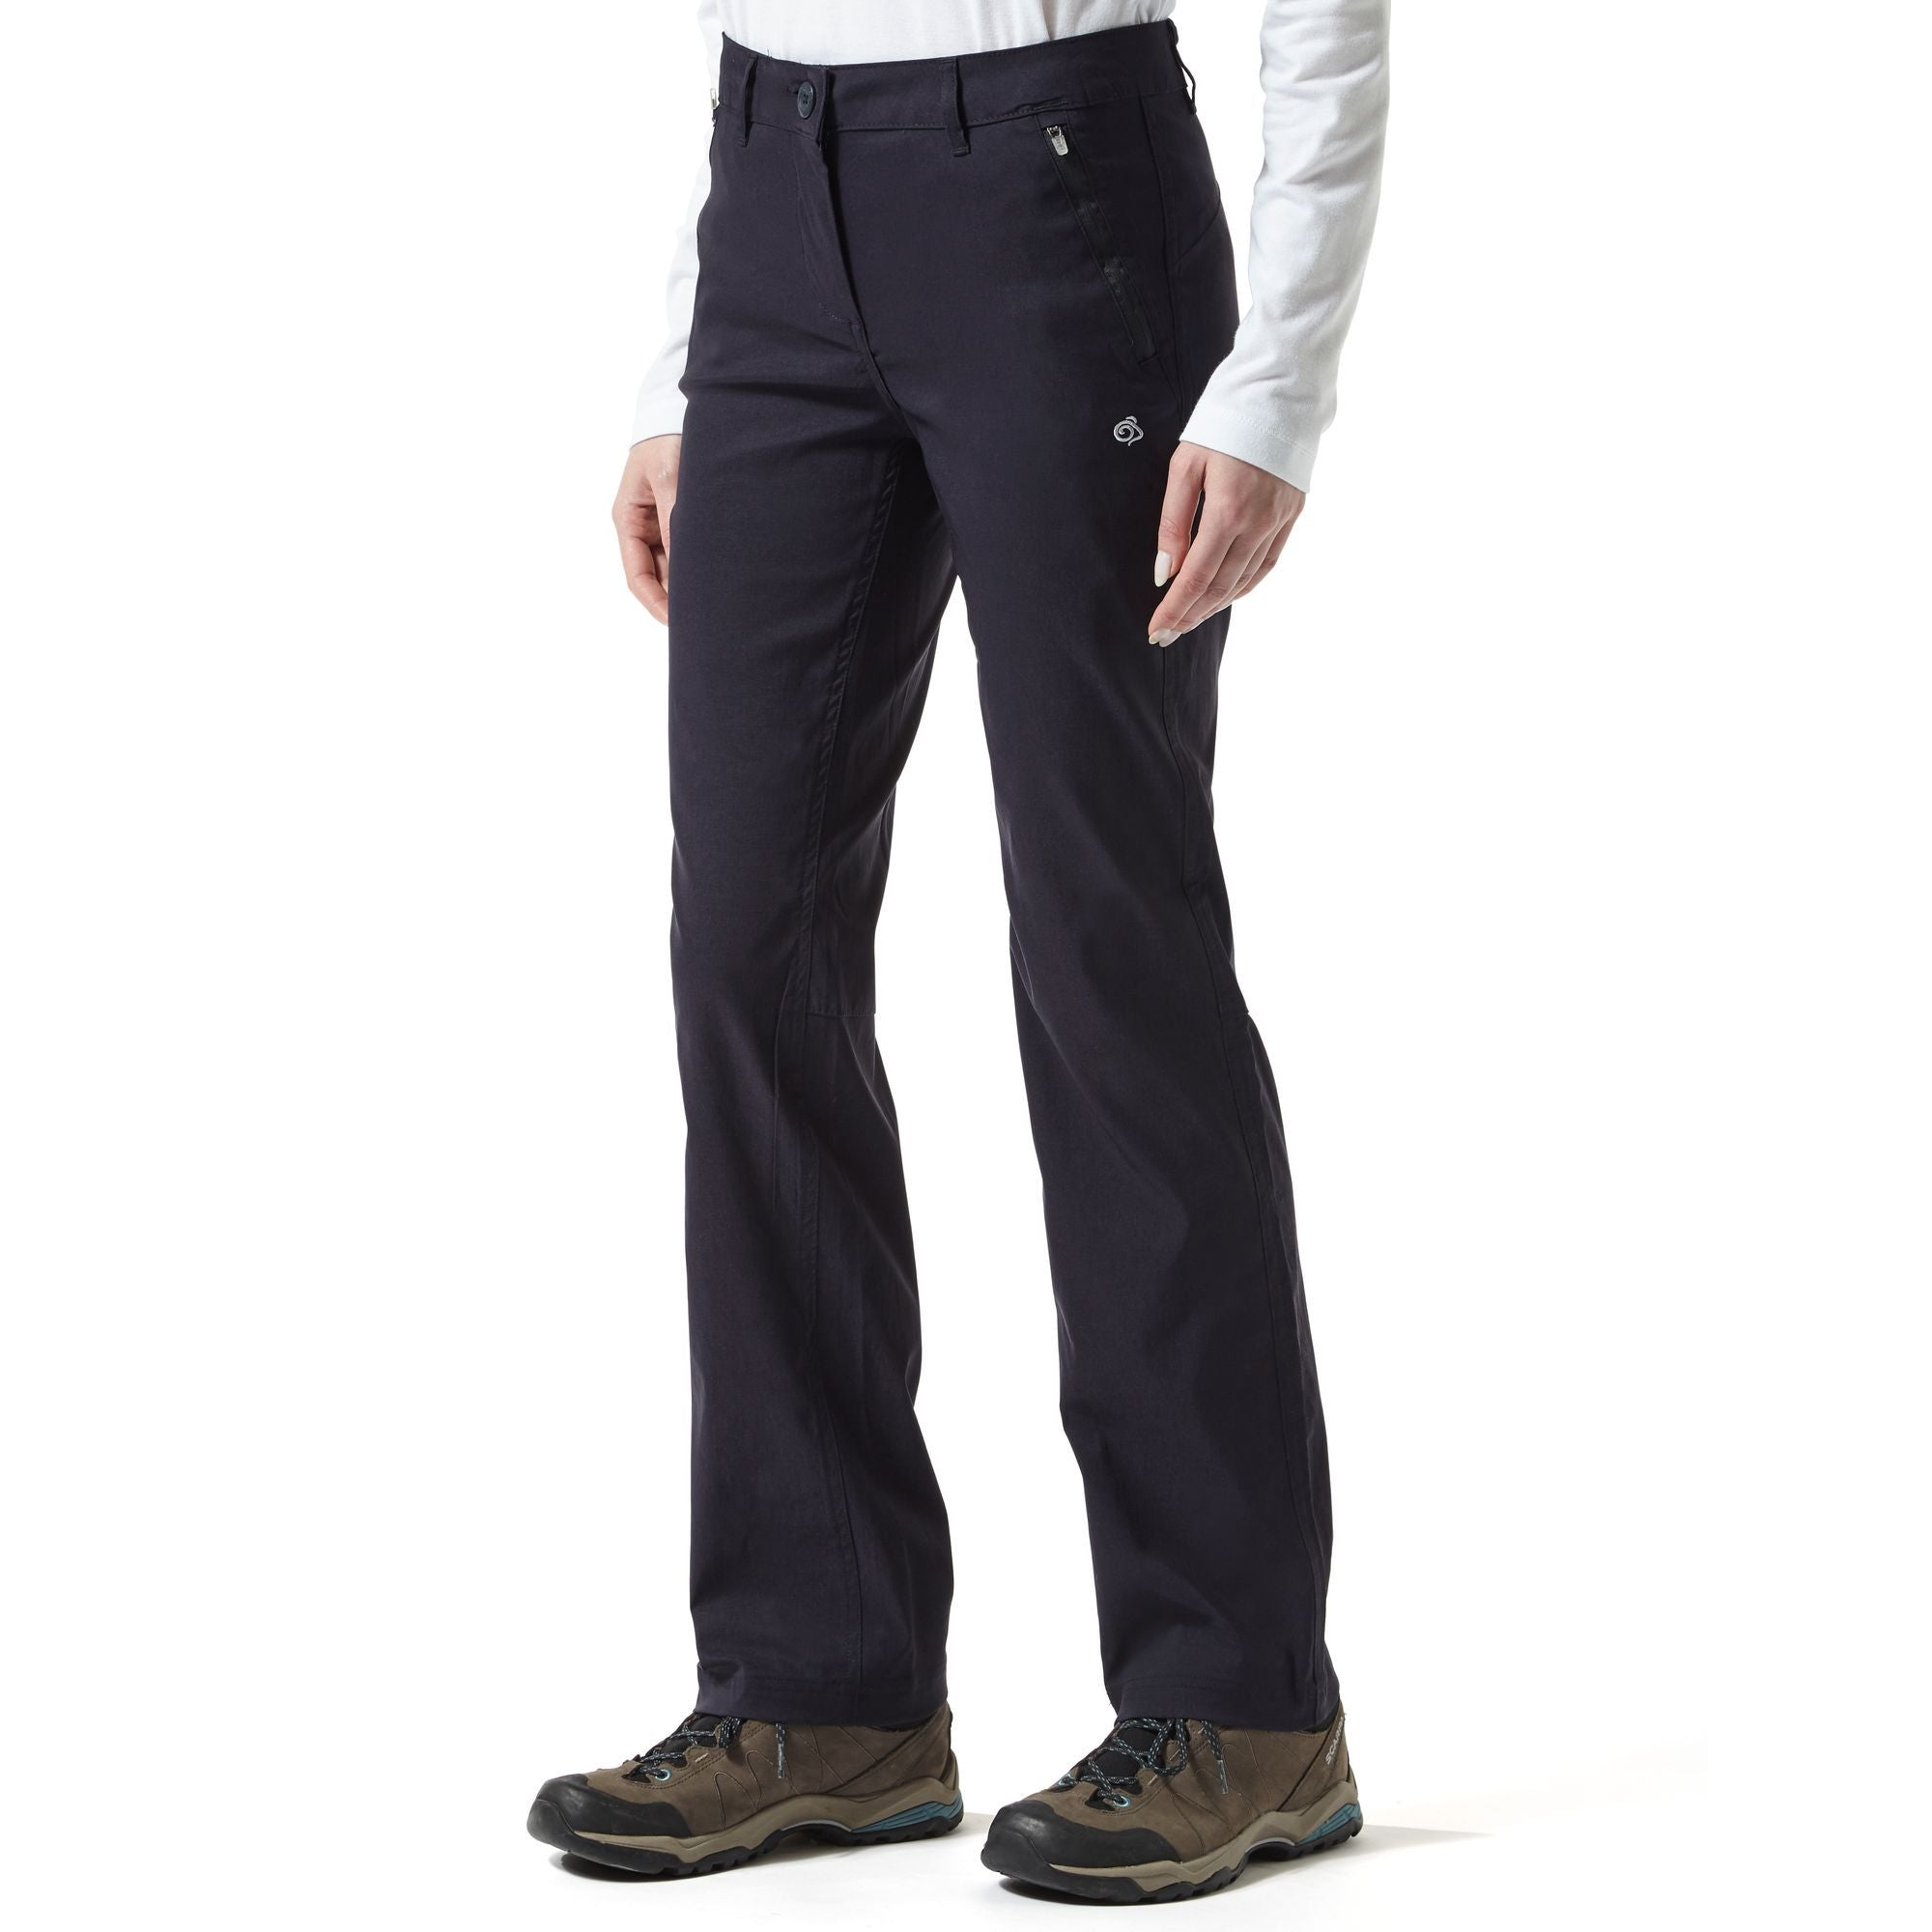 Craghoppers Kiwi Pro Stretch Trousers for Ladies in Dark Navy